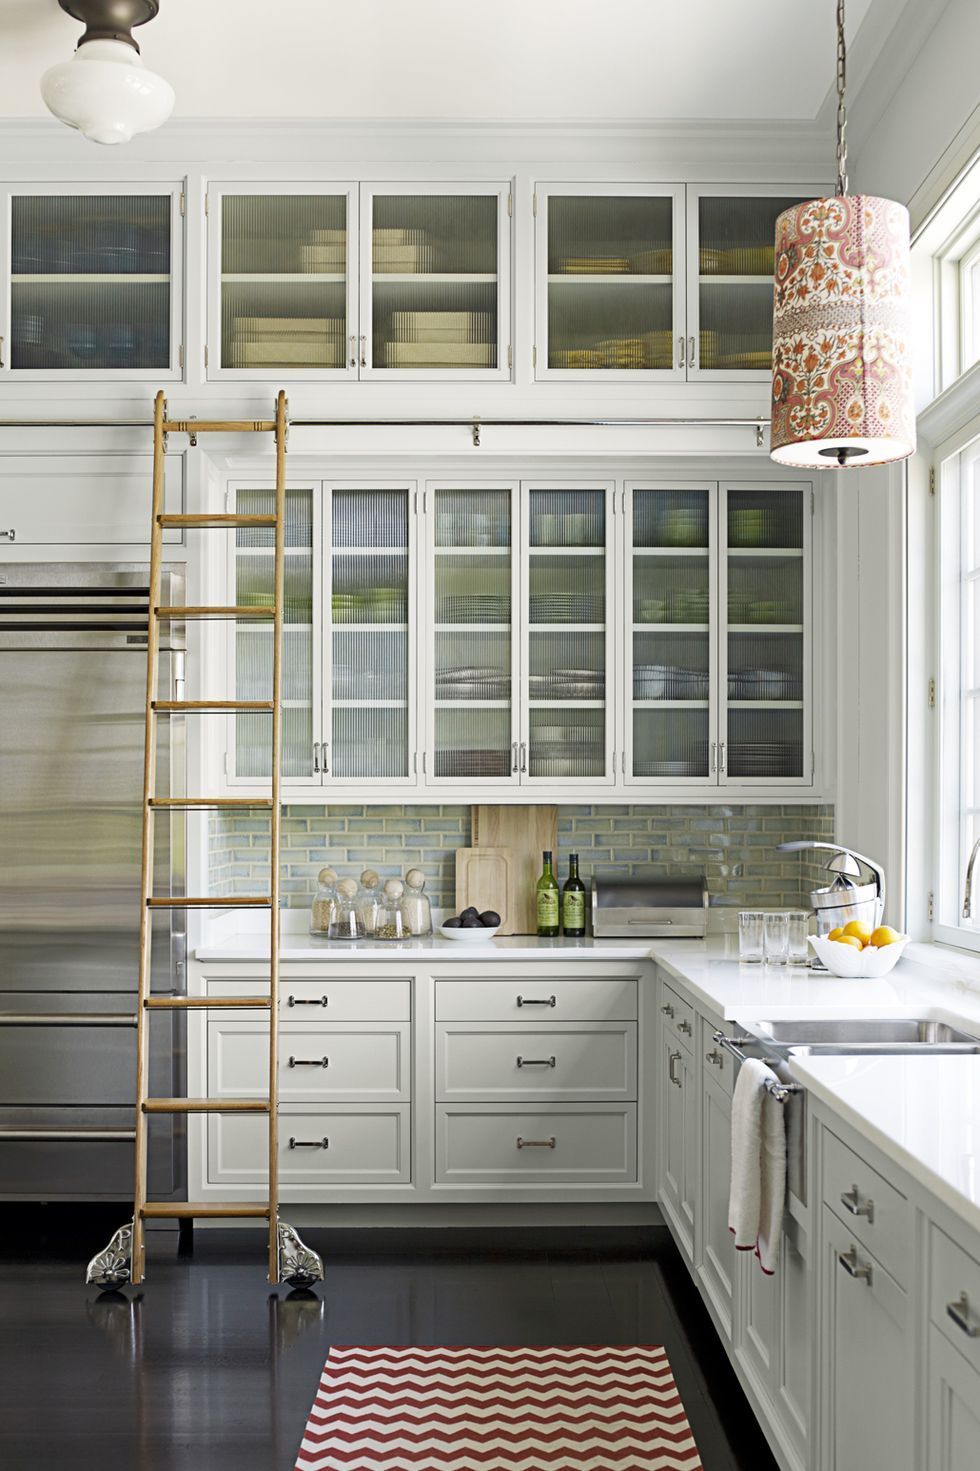 50 Clever Small Kitchen Ideas To Steal Kitchen Design Small Kitchen Design Farmhouse Style Kitchen